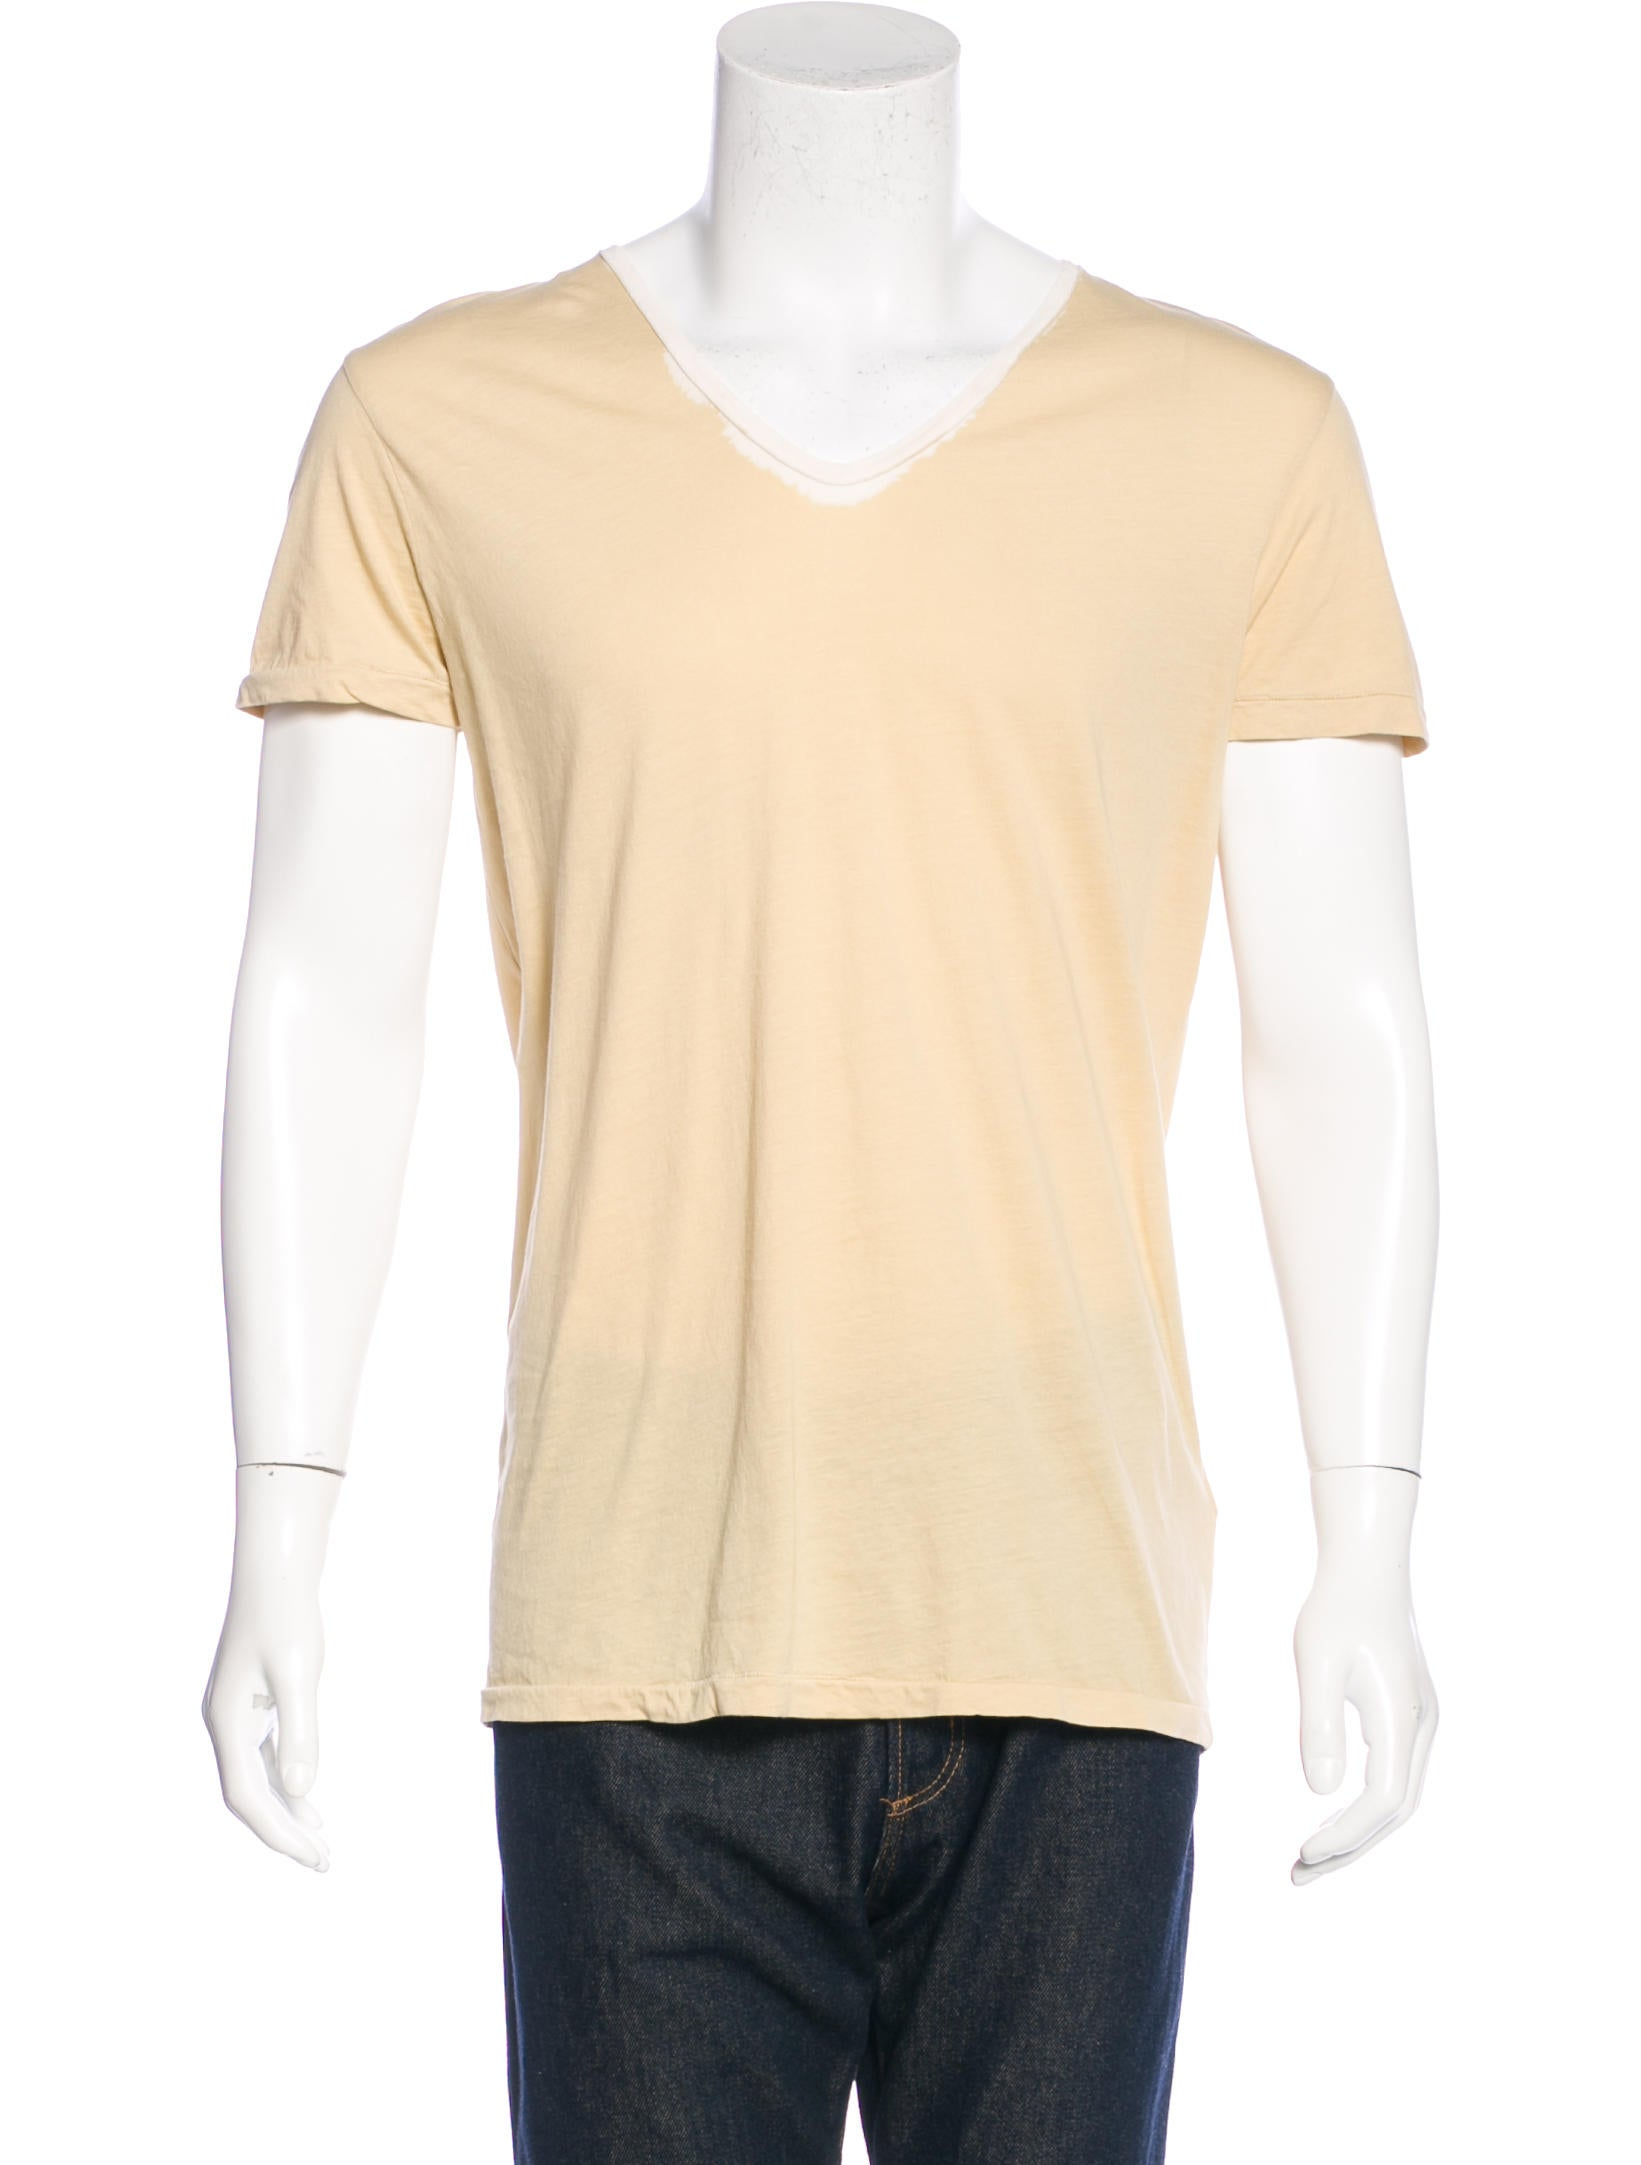 Bottega veneta v neck woven t shirt clothing bot42683 for Bottega veneta t shirt